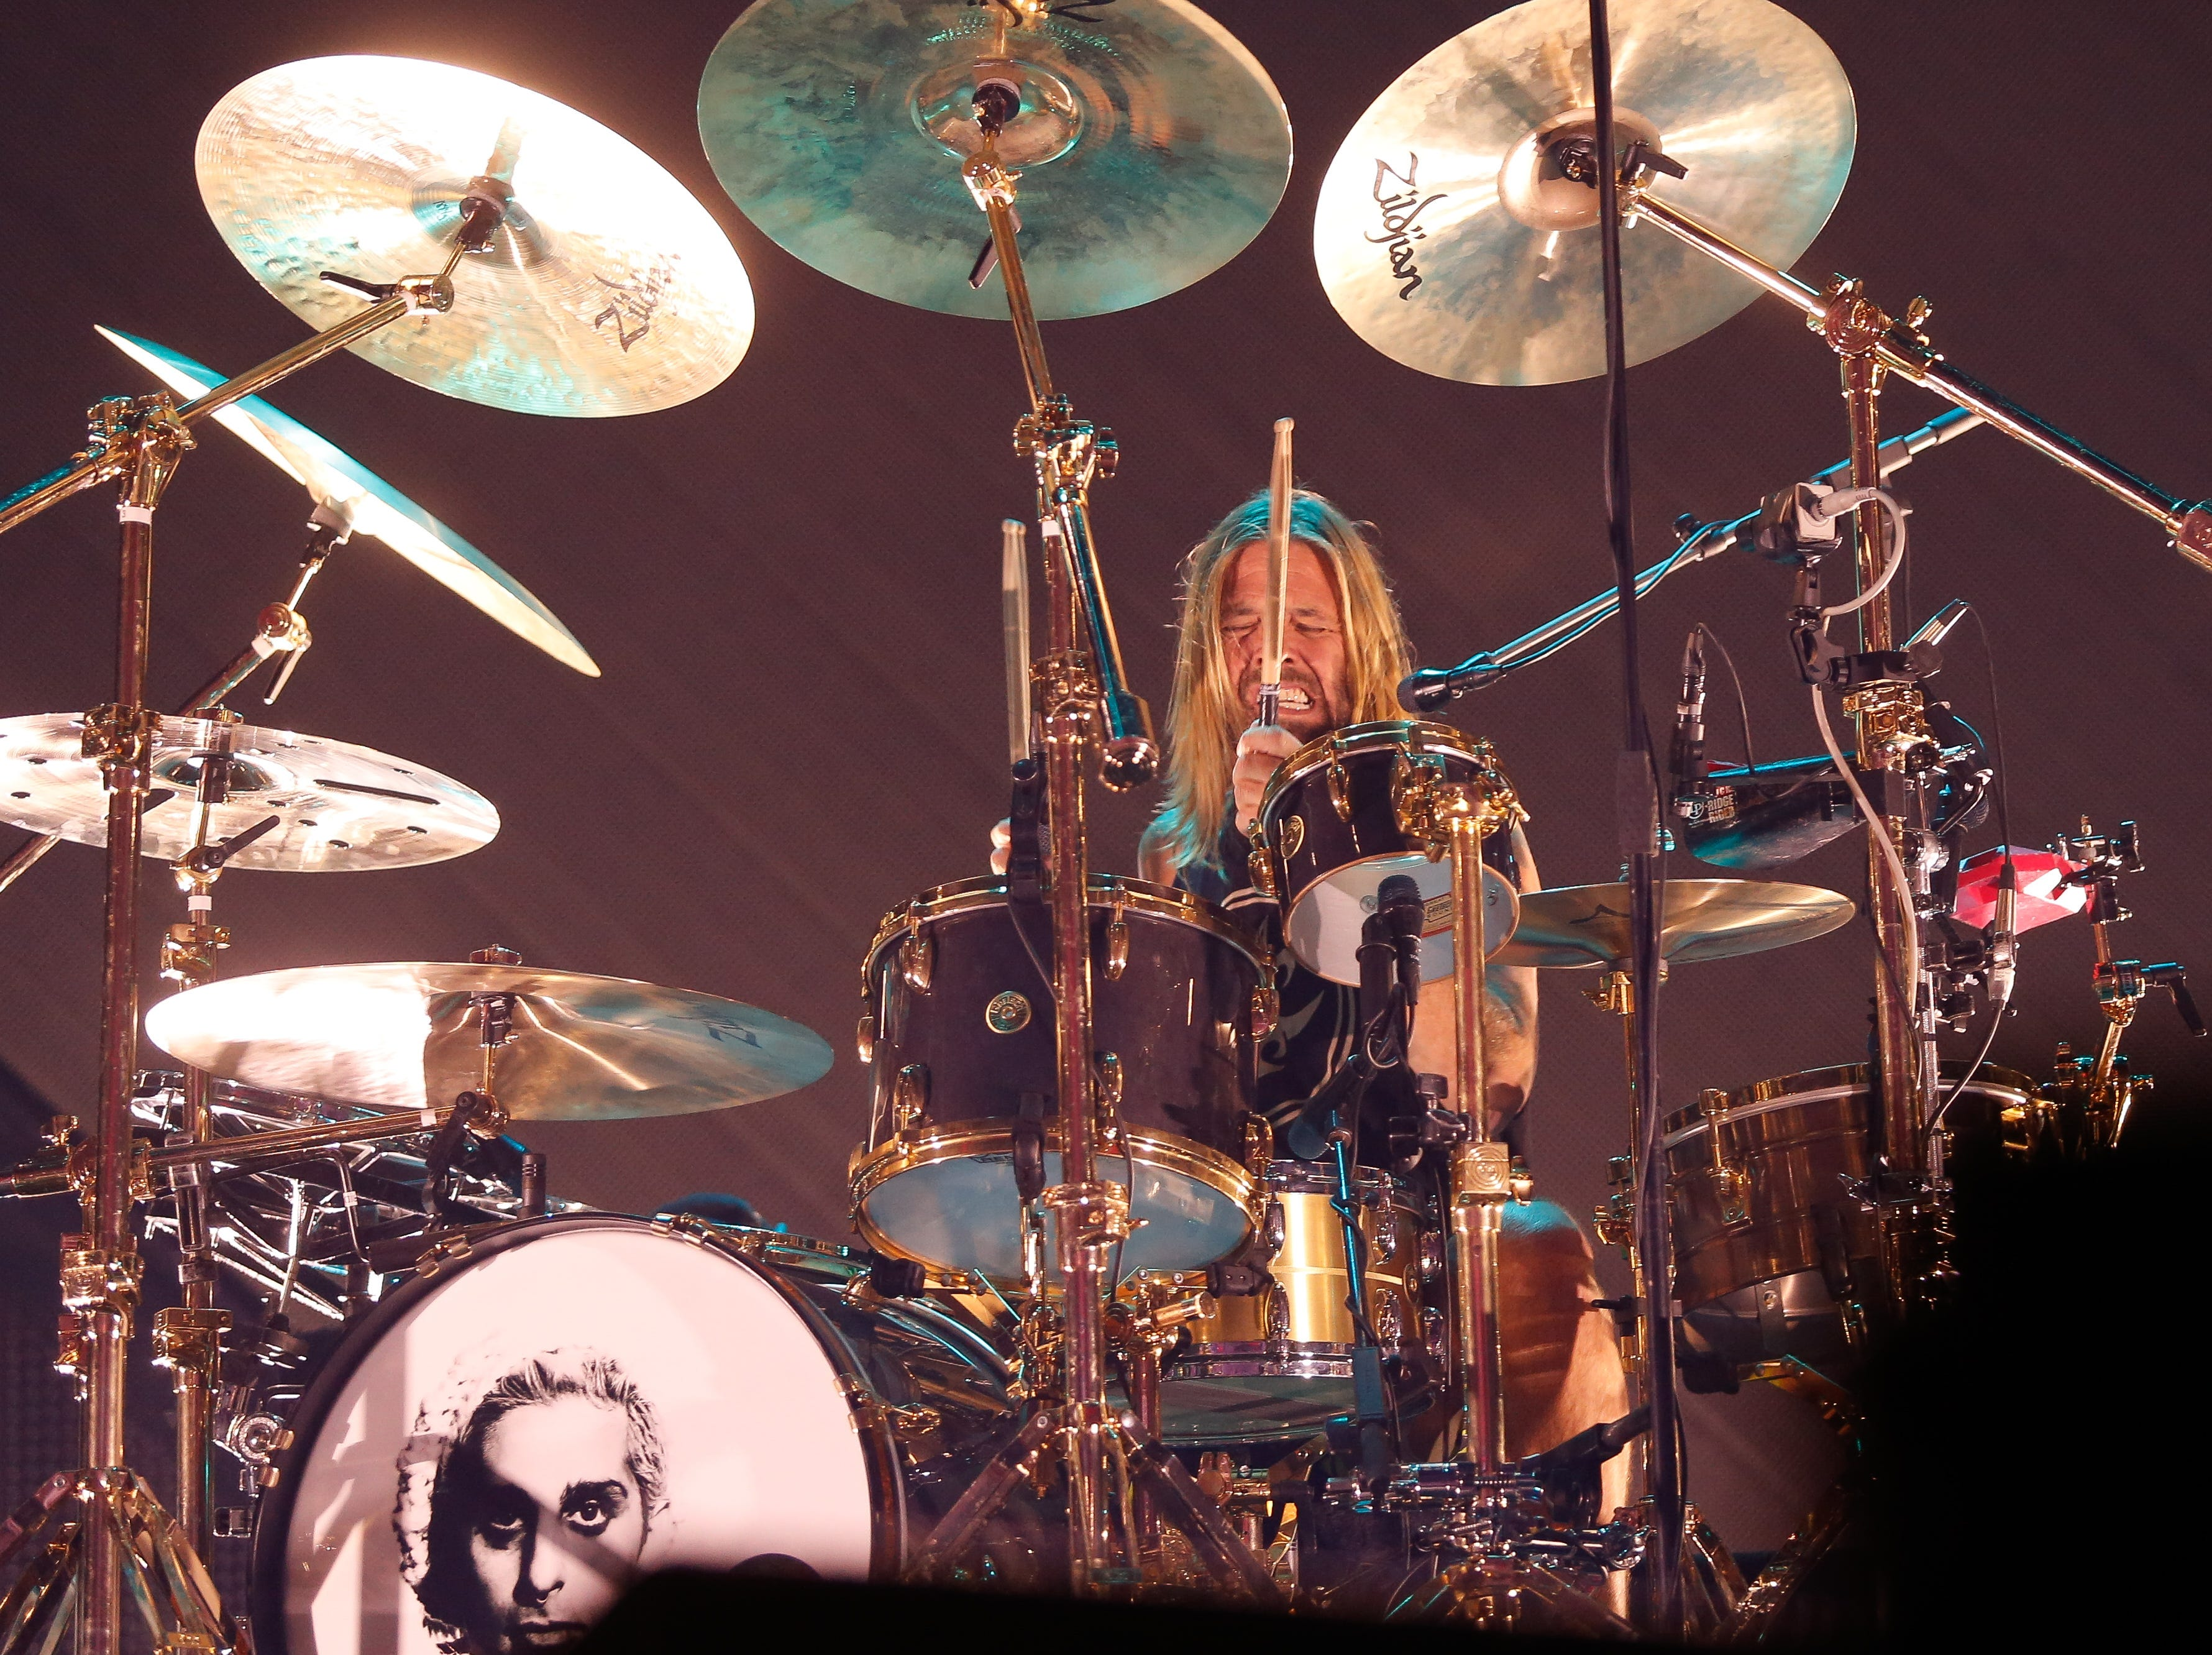 Drummer Taylor Hawkins performs with the Foo Fighters Monday night at Little Caesars Arena.